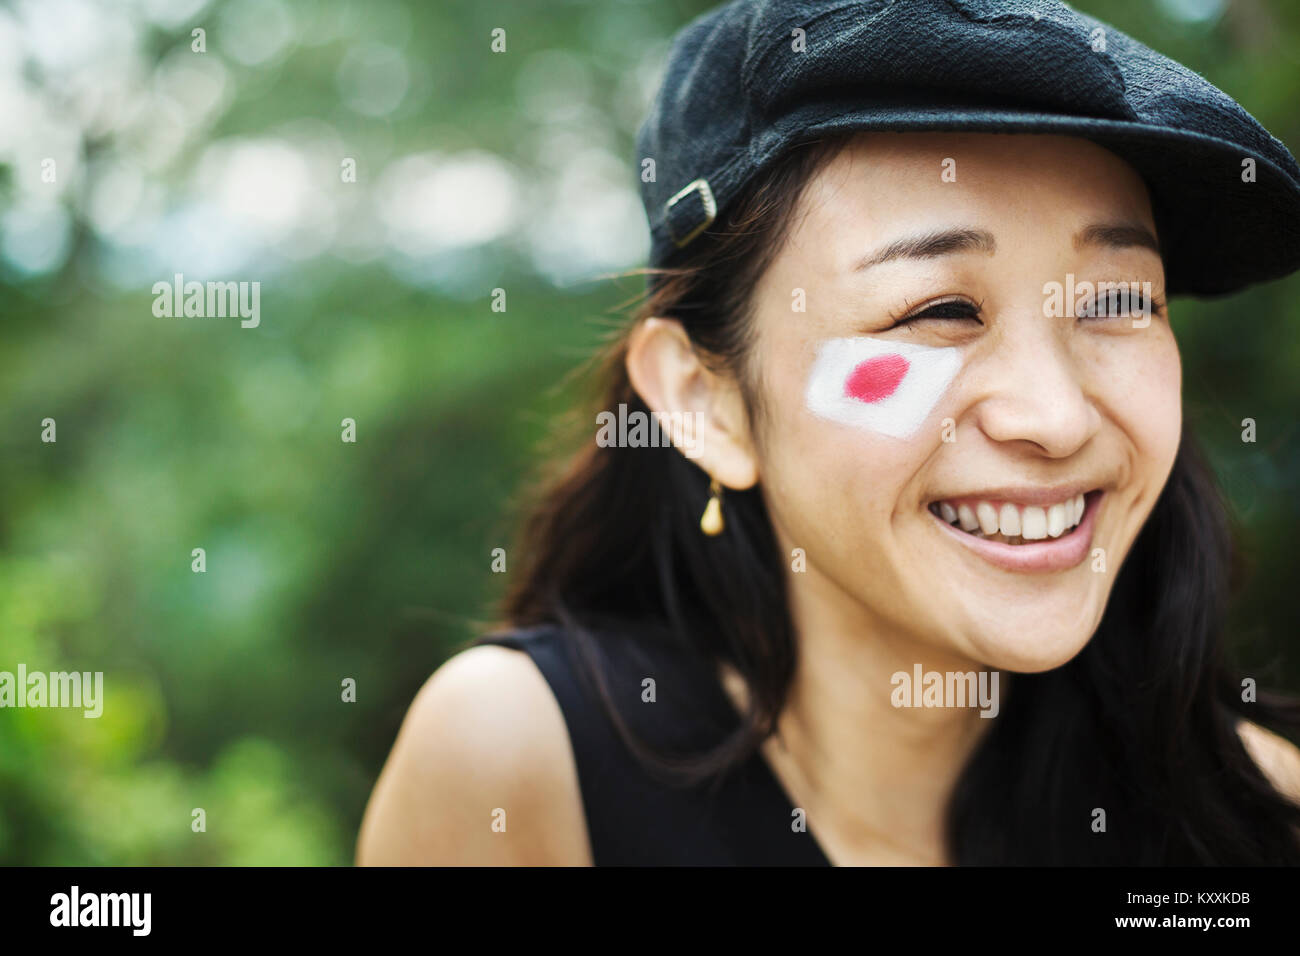 3c90f5c30ba65 Portrait of smiling young woman with black hair wearing flat cap ...